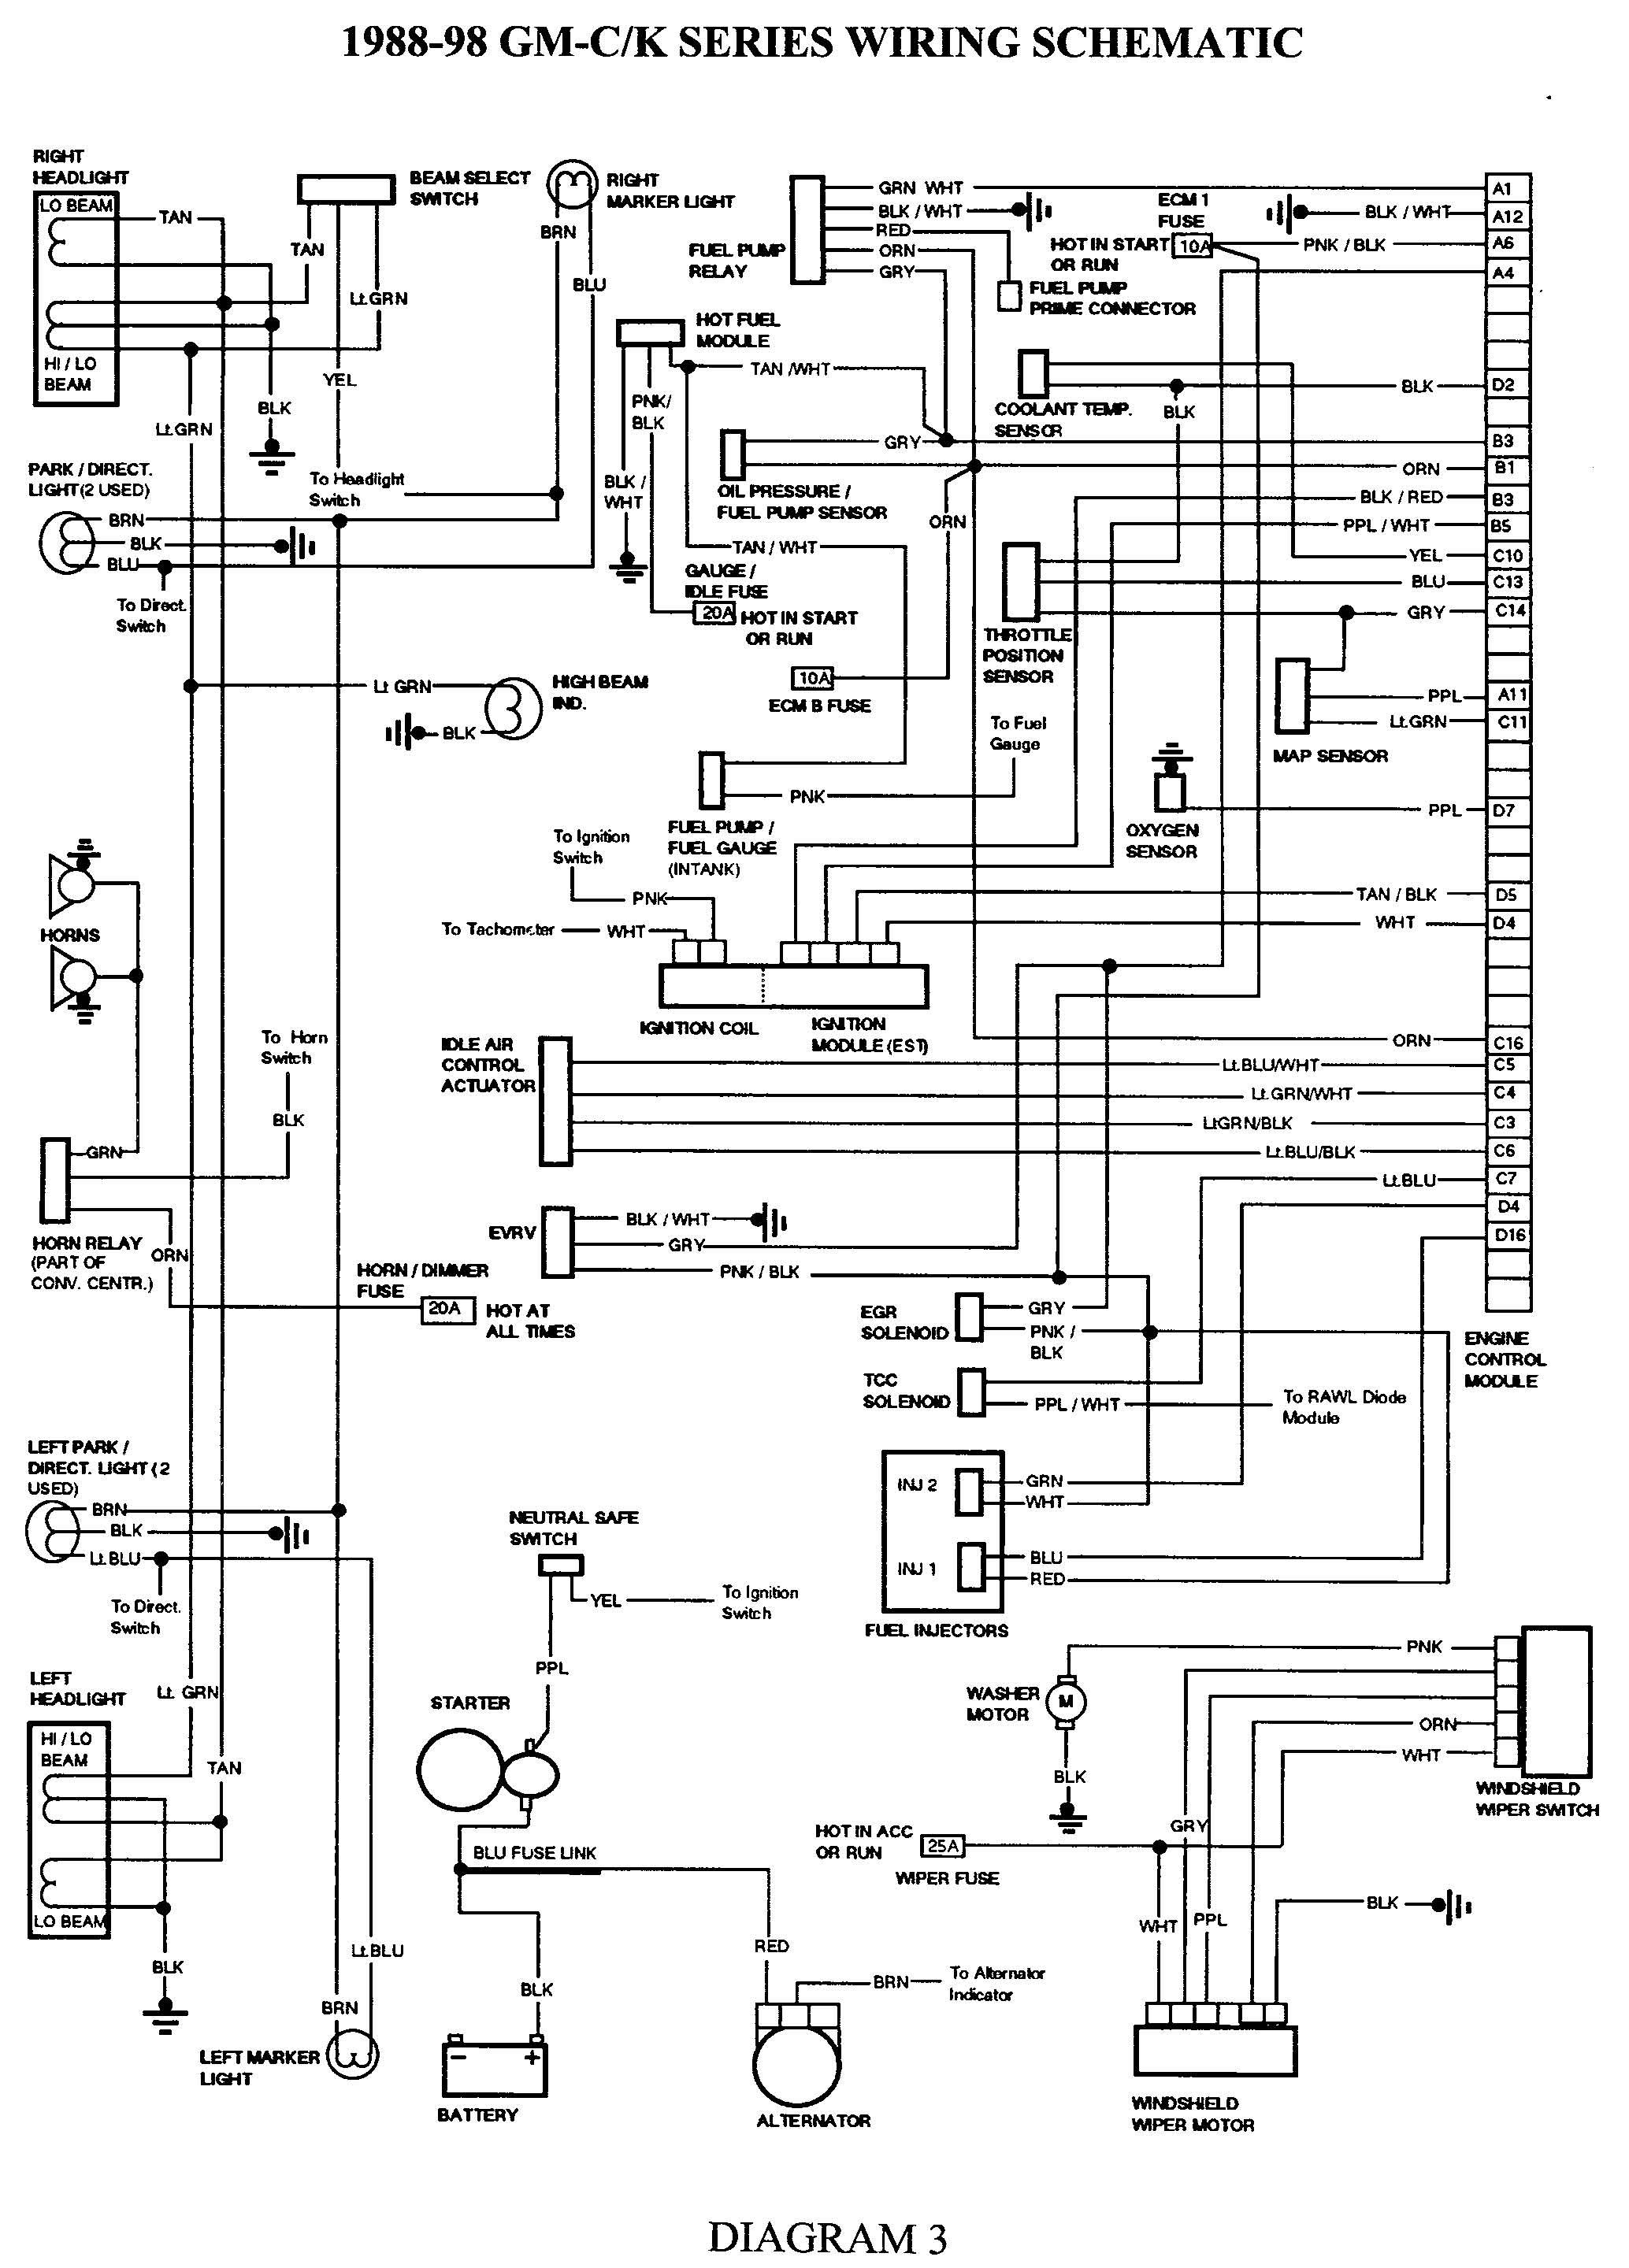 Gmc Truck Wiring Diagrams On Gm Wiring Harness Diagram 88 98 | Kc - Chevy Wiring Harness Diagram